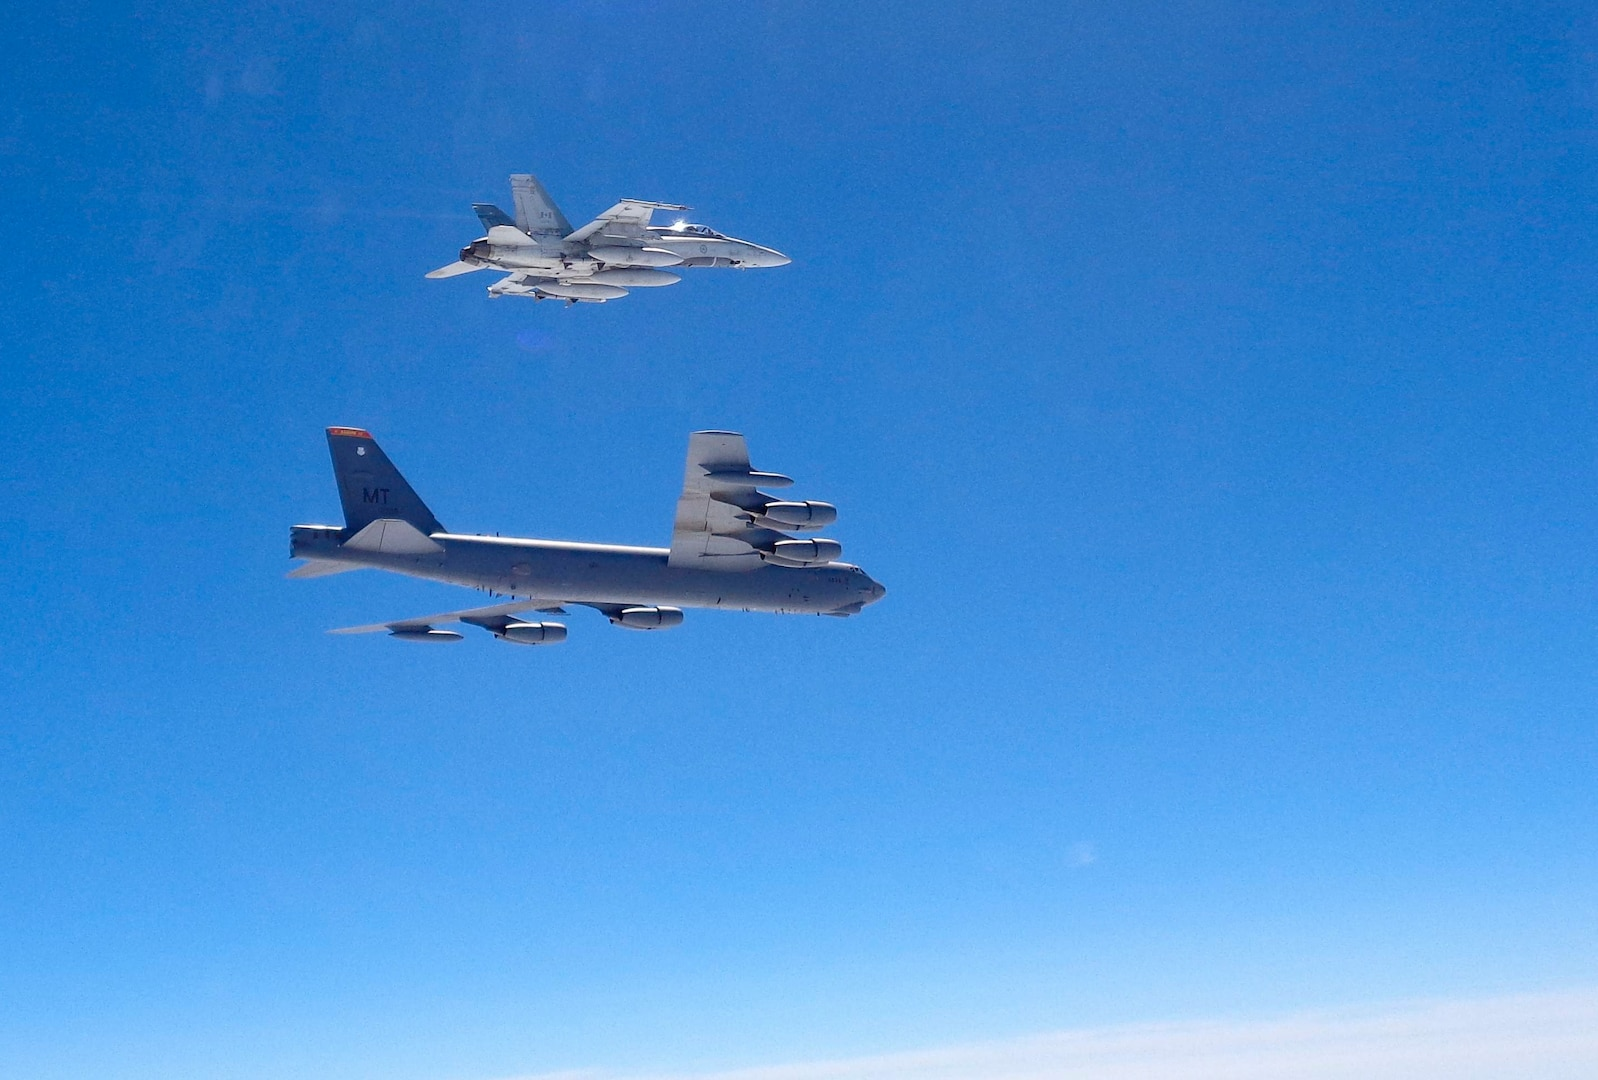 A Canadian CF-18 fighter jet intercepts a B-52 Stratofortress from the 2nd Bomb Wing, Barksdale Air Force Base, La., over the Atlantic in support of POLAR ROAR, Aug. 1, 2016. The B-52 flew non-stop from the U.S. to the Baltic Sea and back to conduct the intercept training with NORAD-assigned Canadian fighter aircraft and NATO allies. In total, three B-52s and two B-2 Spirit bombers from all three of the U.S.'s strategic bomber bases (Barksdale AFB, La.; Minot AFB, N.D.; and Whiteman AFB, Mo.) participated in POLAR ROAR, which also included flights to the Arctic and Alaska's Aleutian Islands.  Strategic bomber missions like POLAR ROAR ensure crews maintain the readiness and proficiency necessary to provide an always-ready global strike capability. (Photo courtesy of Canadian NORAD Region)